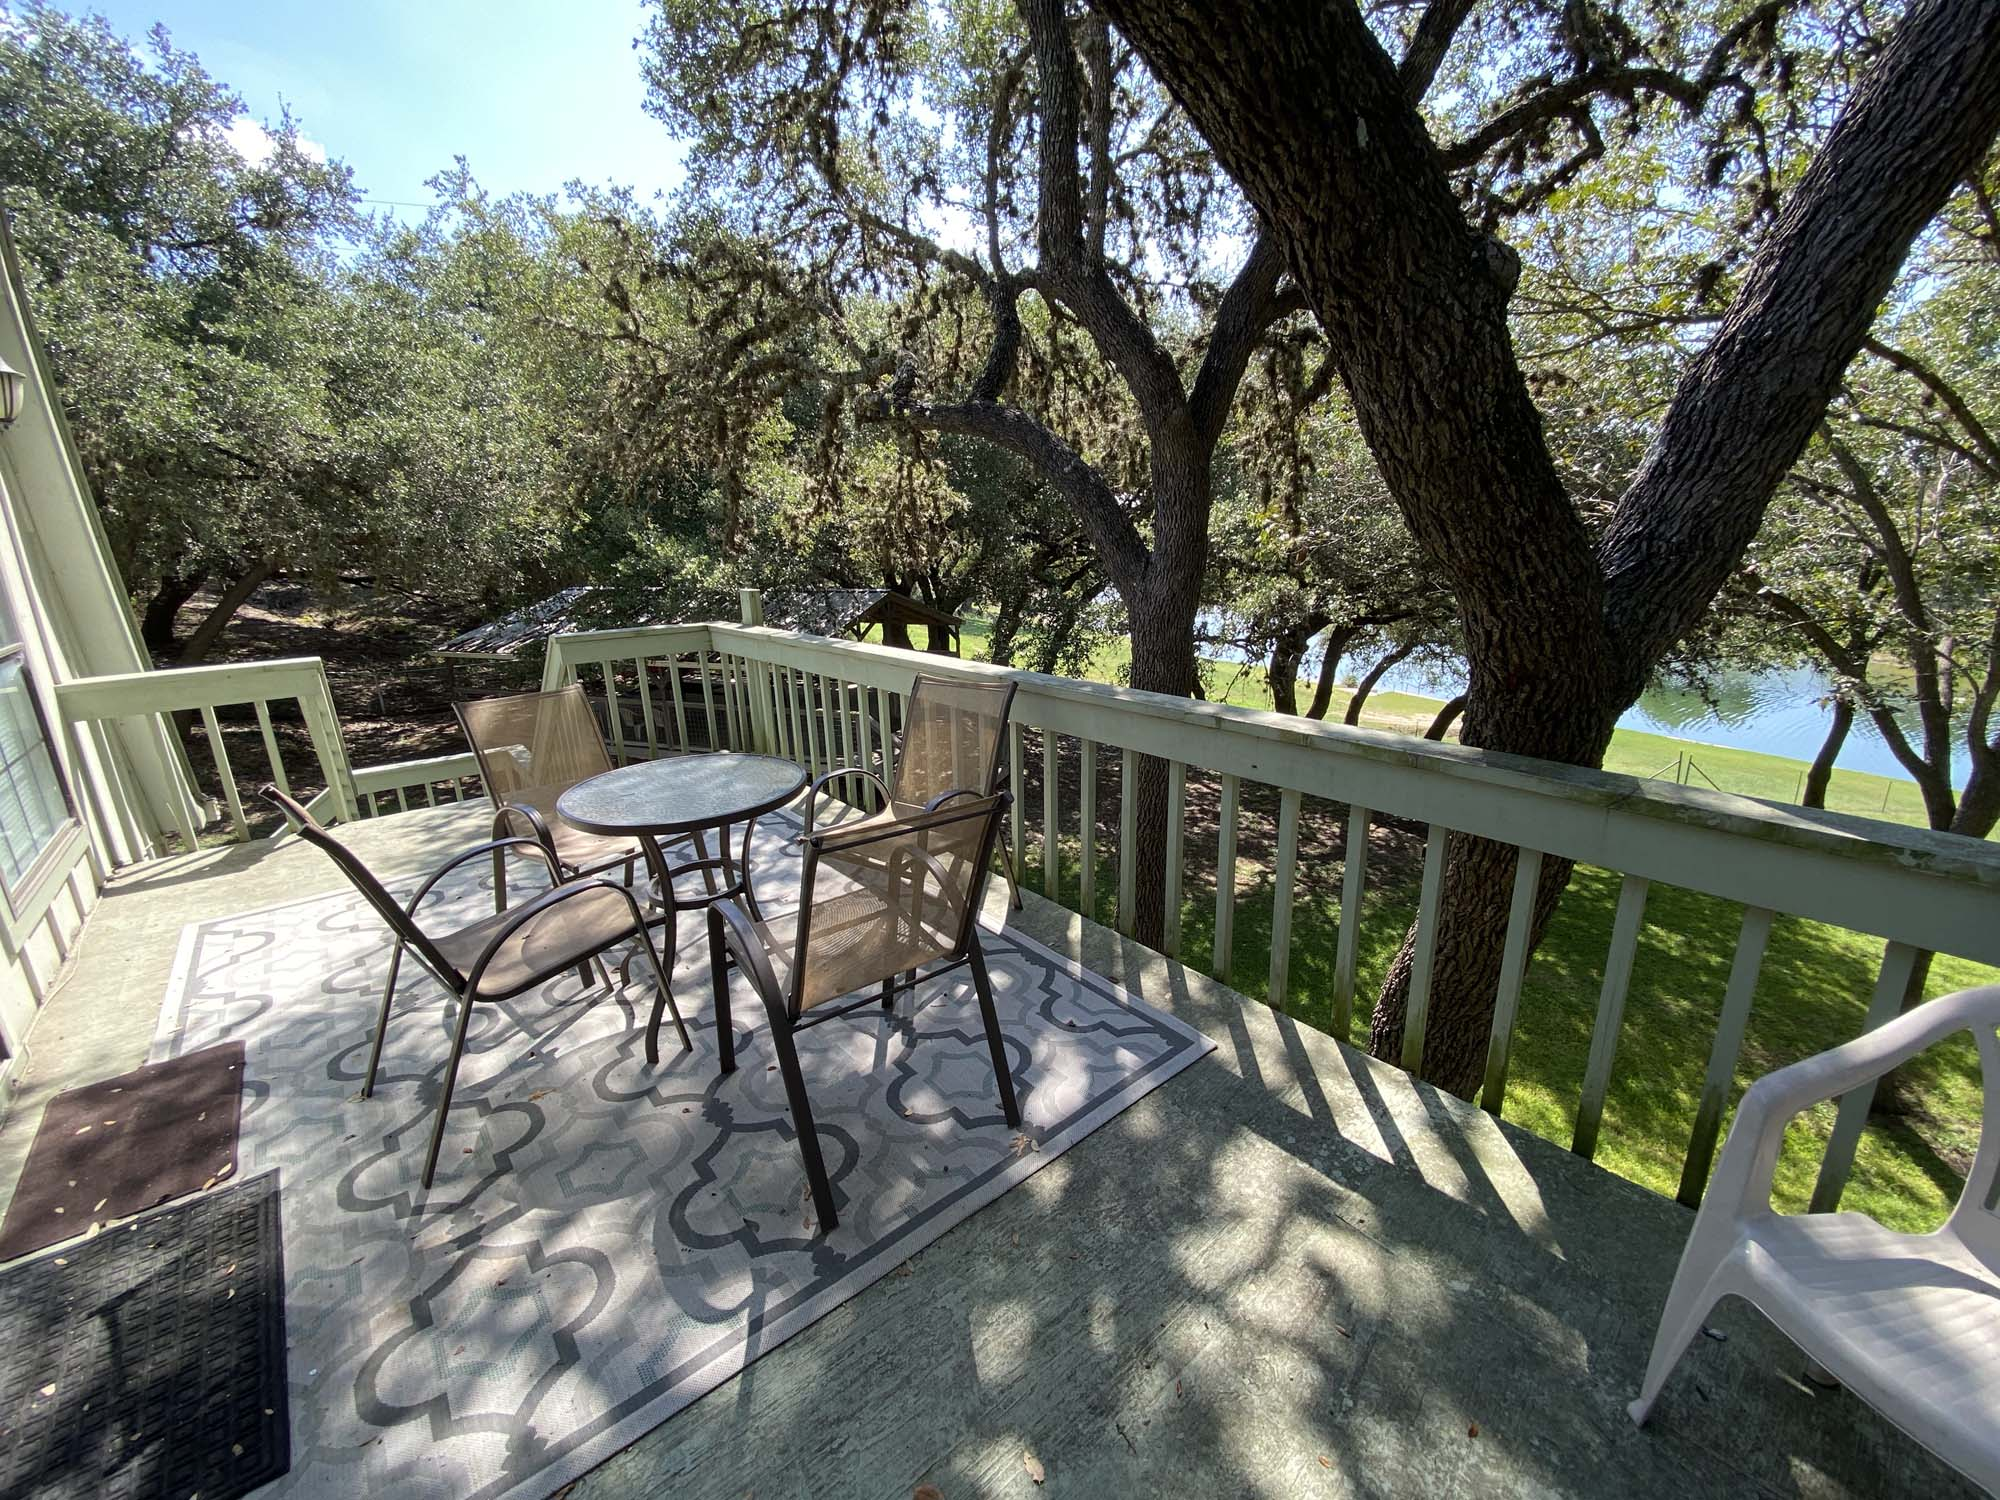 Tree-Top Suite - TWO DAM GUEST COTTAGES - Contact Hill Country Premier Lodging at 512-847-7460